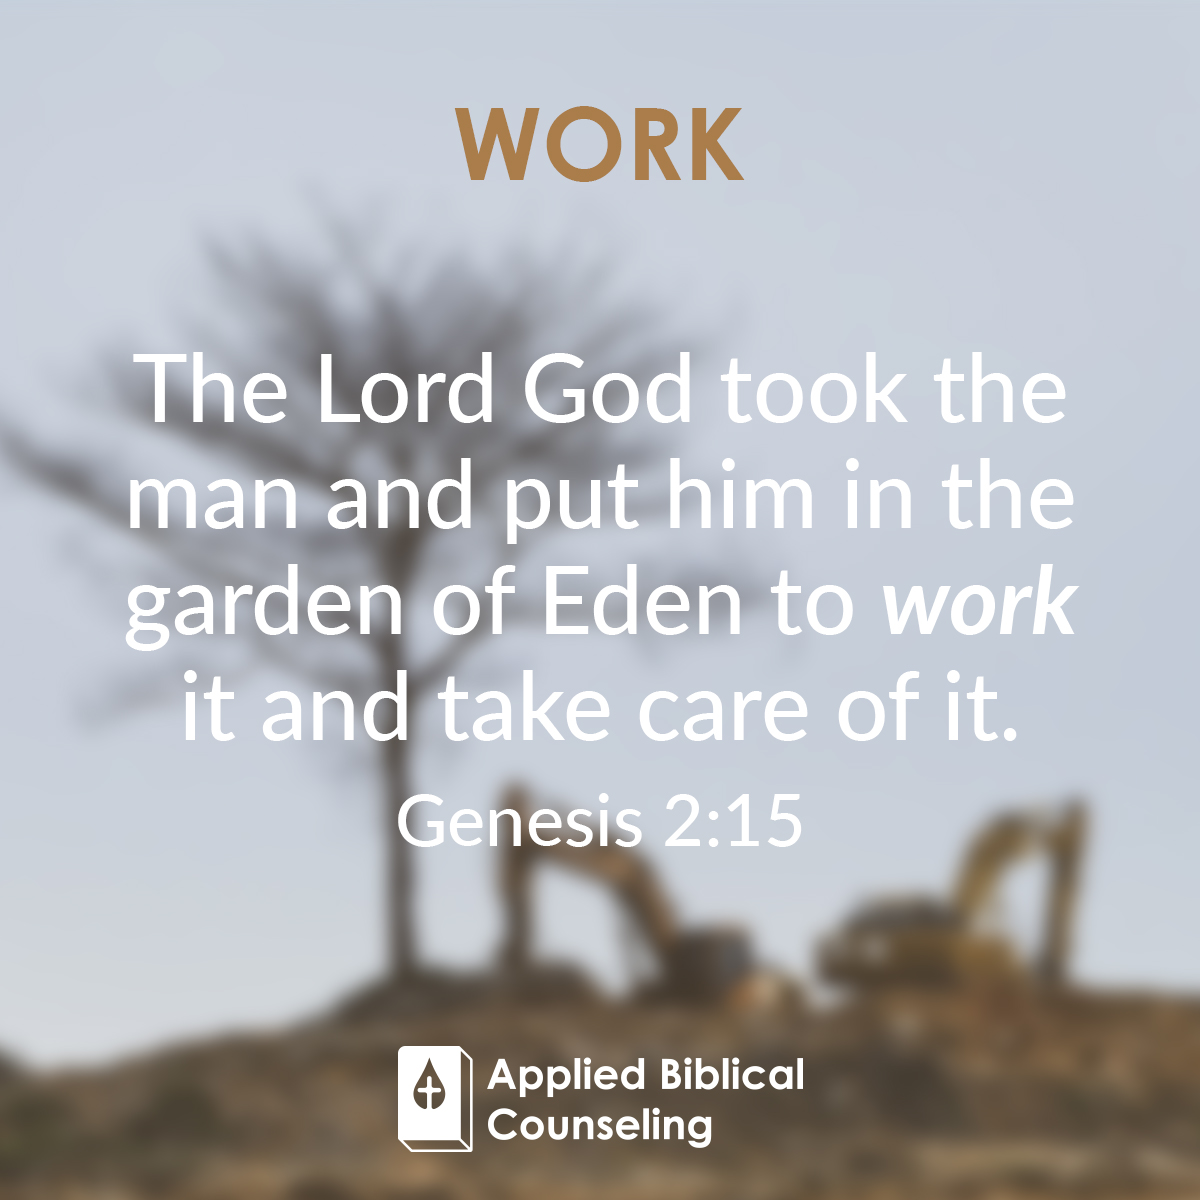 Applied Biblical Counseling Facebook w24 Work 2